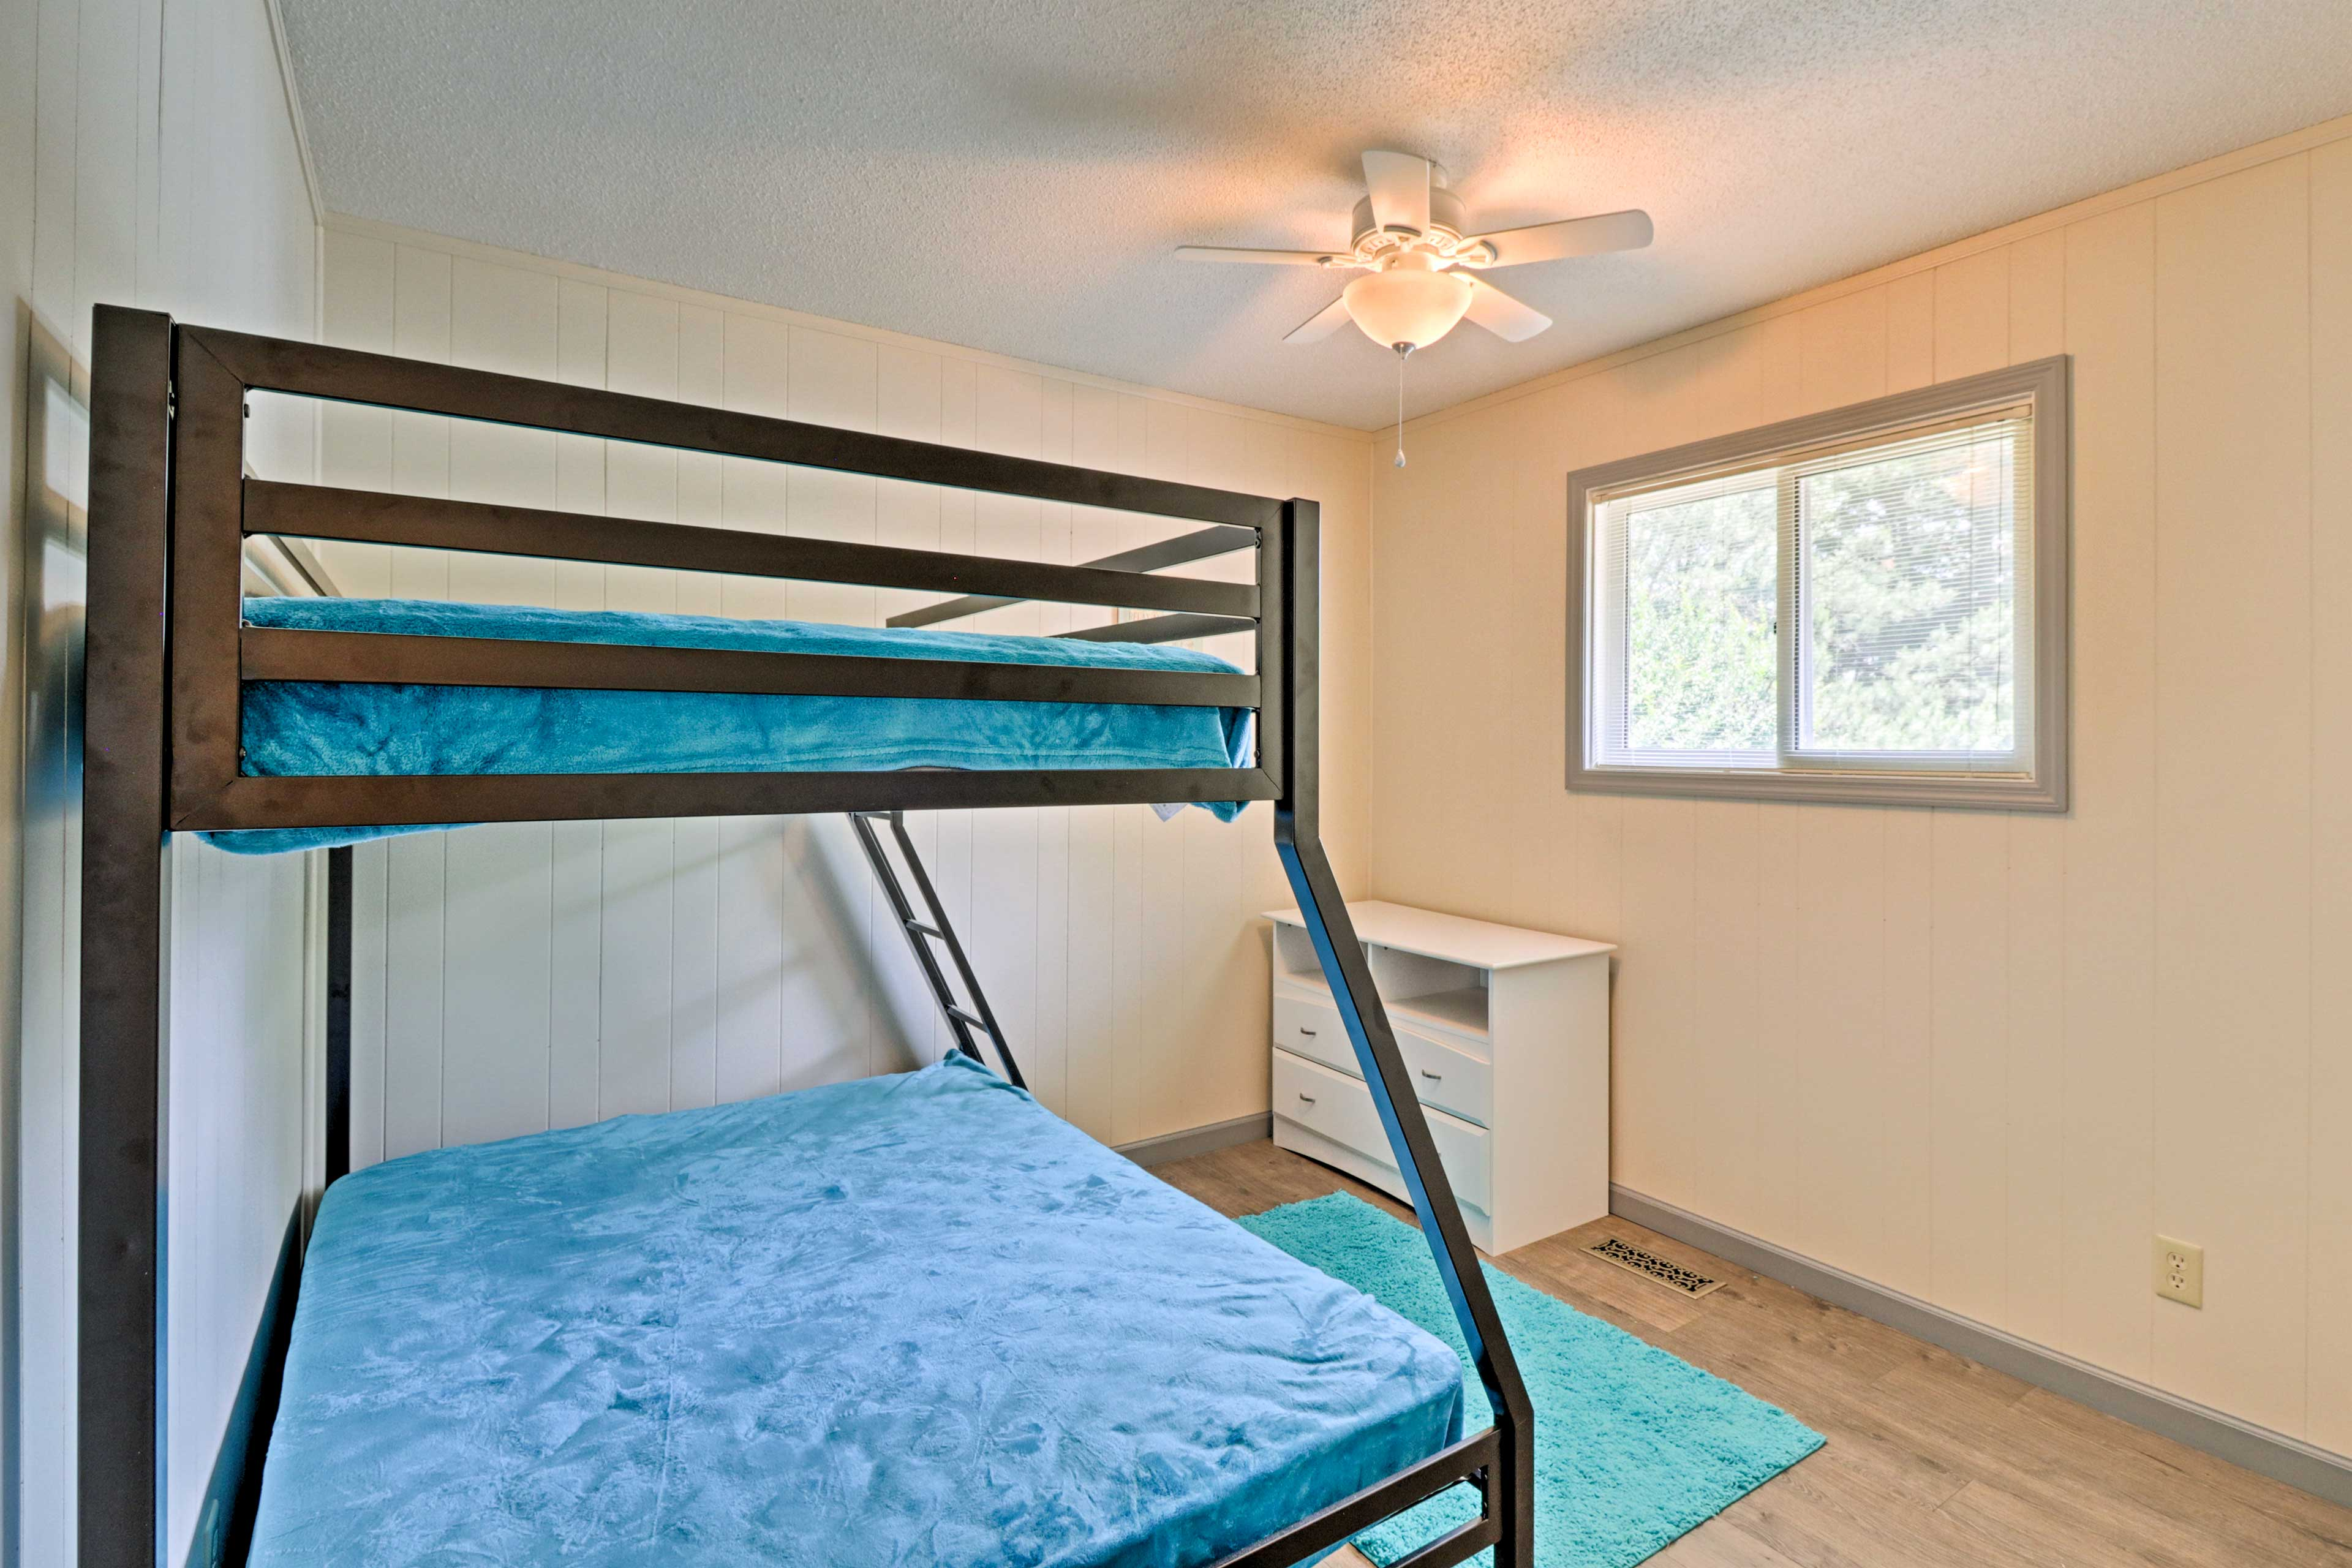 The kids will love a space all their own in the second room.